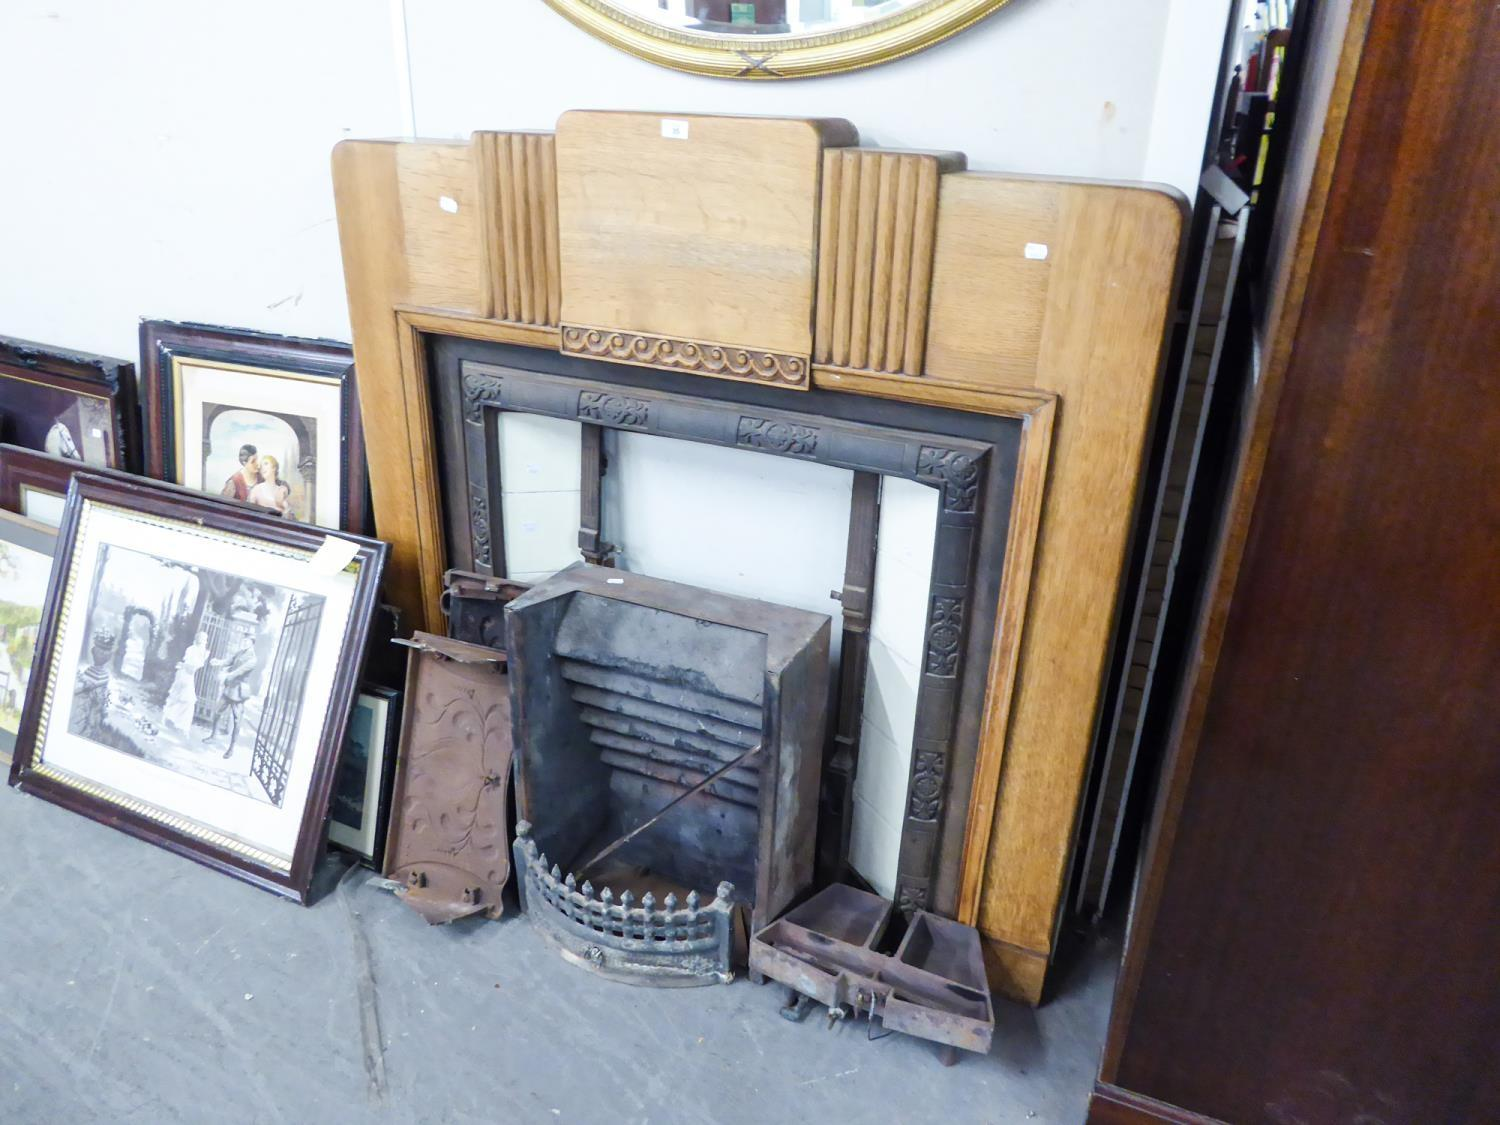 ANTIQUE FIREPLACE WITH ART DECO OAK SURROUND AND CAST INSET WITH TILES